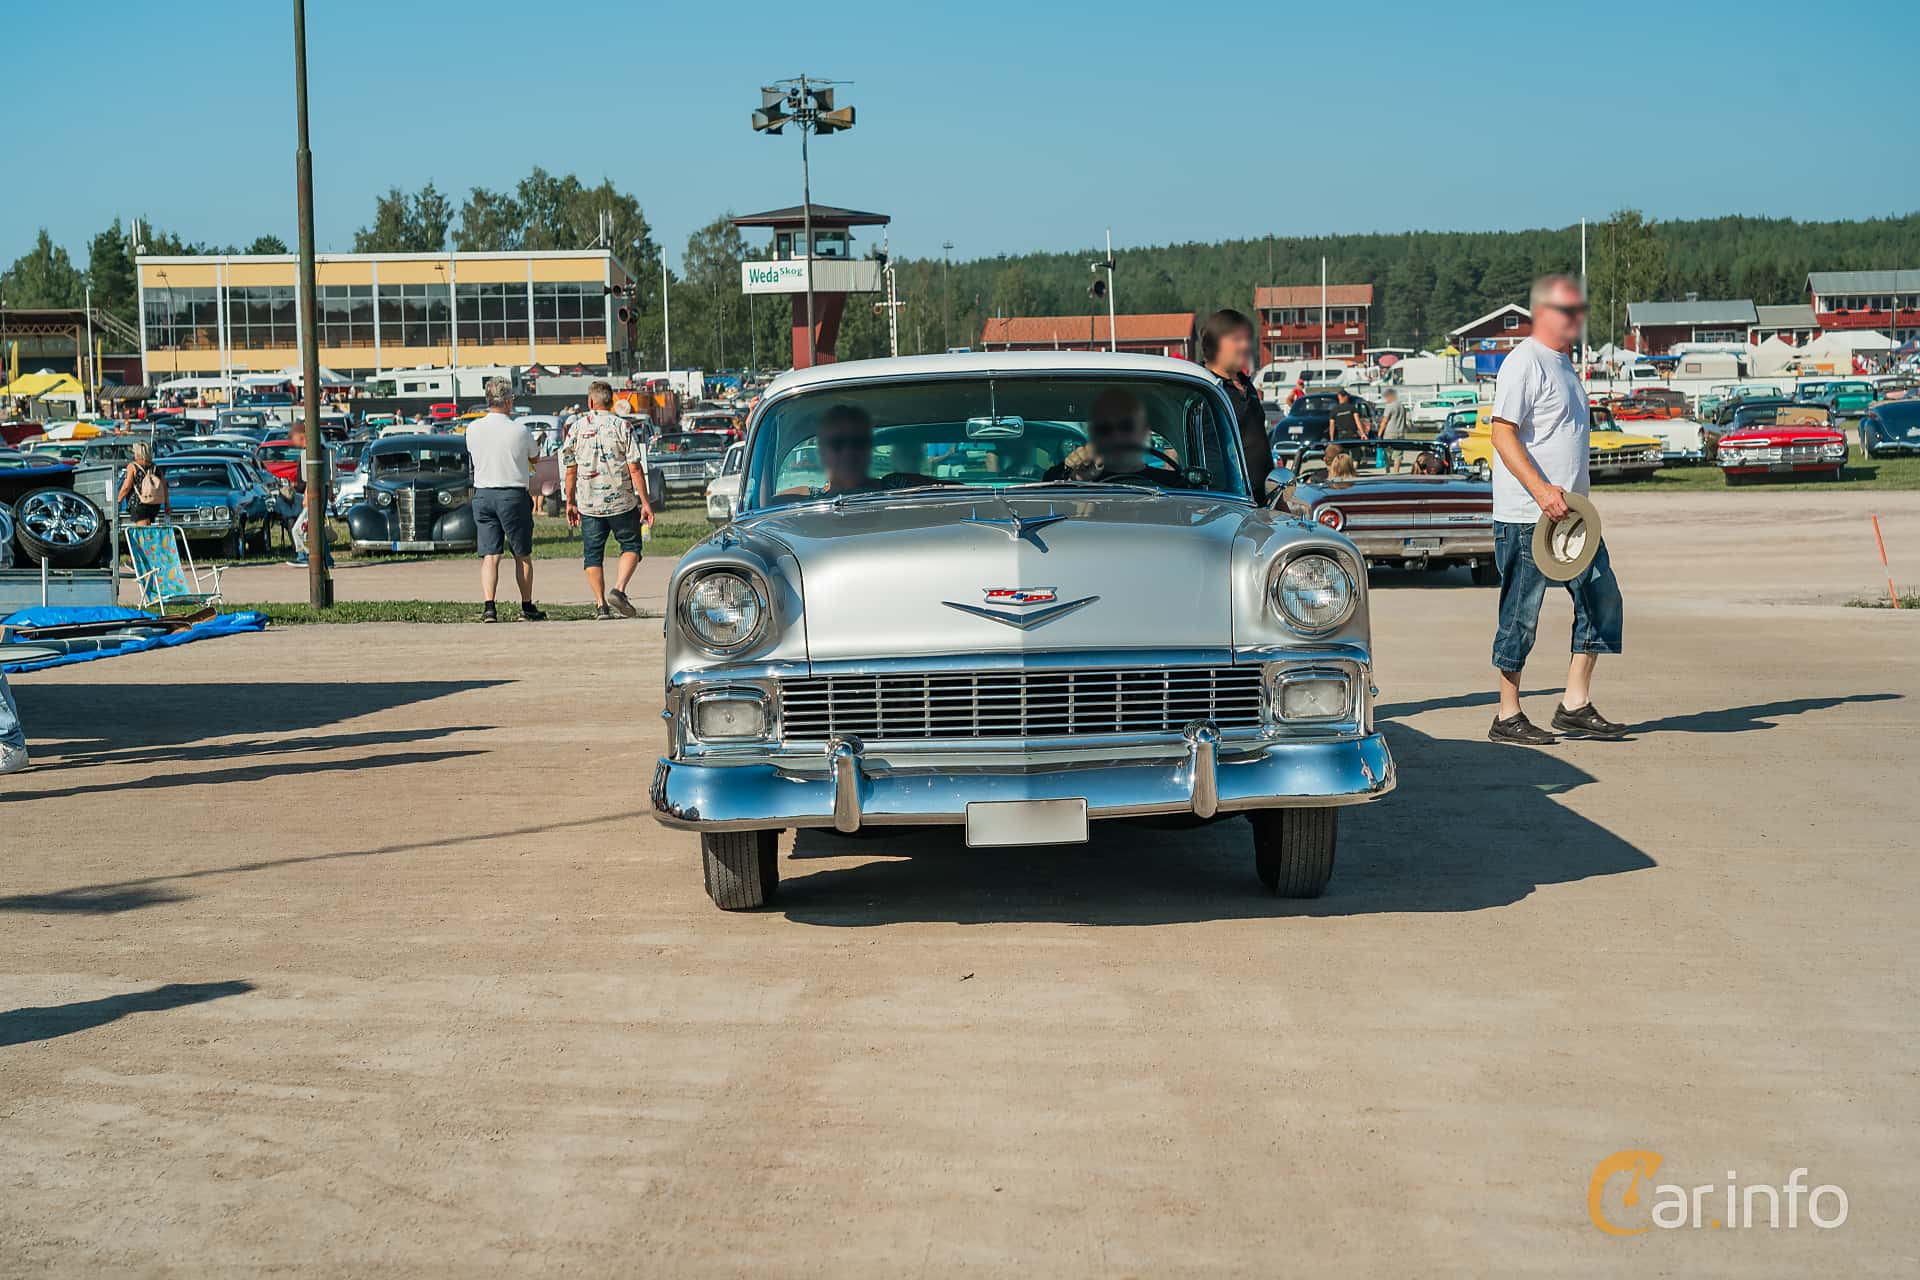 Chevrolet Bel Air Sport Sedan 4.3 V8 Powerglide, 173hp, 1956 at Classic Car Week Rättvik 2019 vecka 31